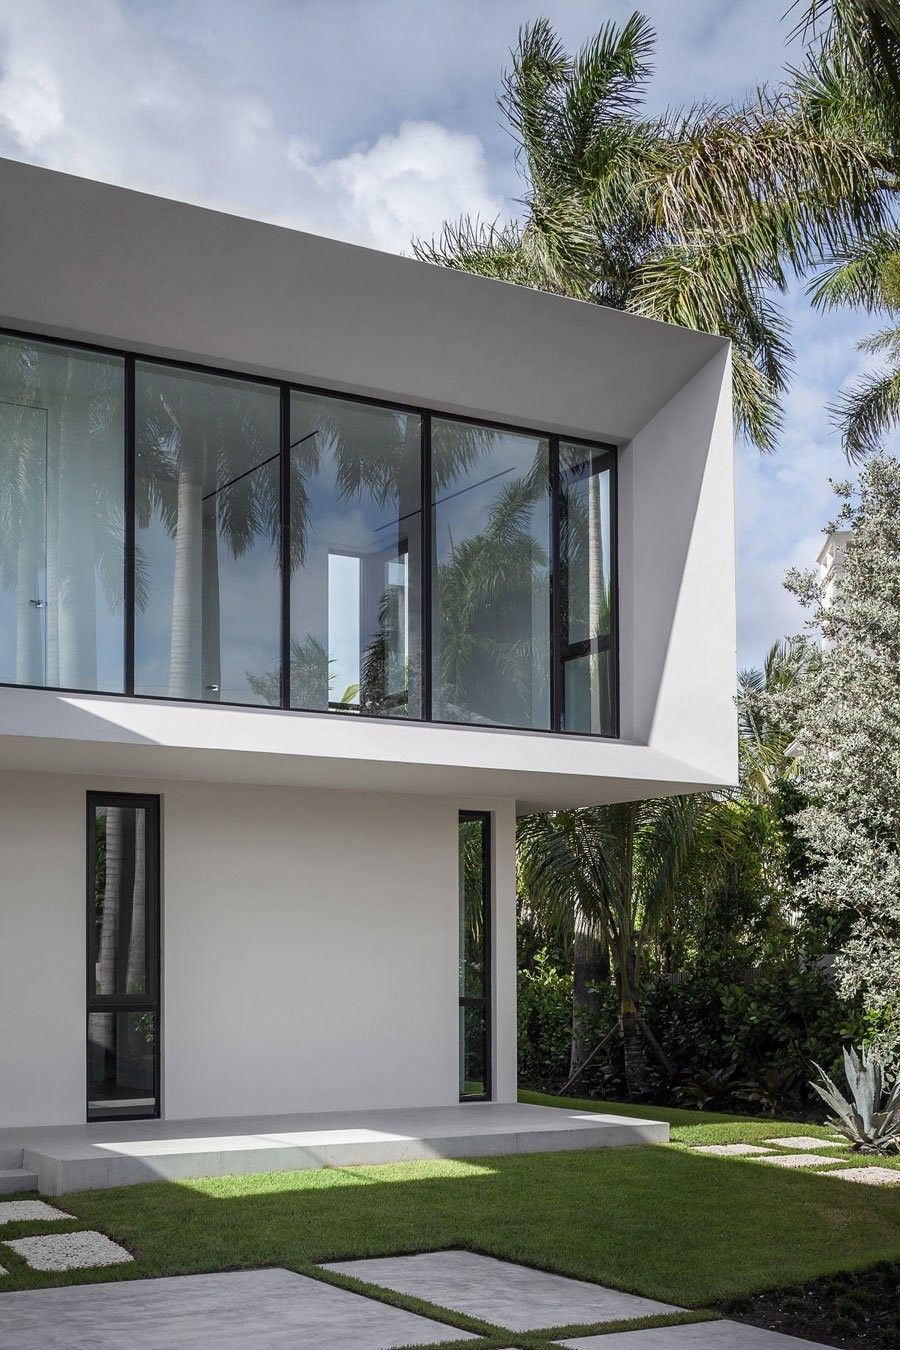 Fendiresidence house pinterest architecture conceiving